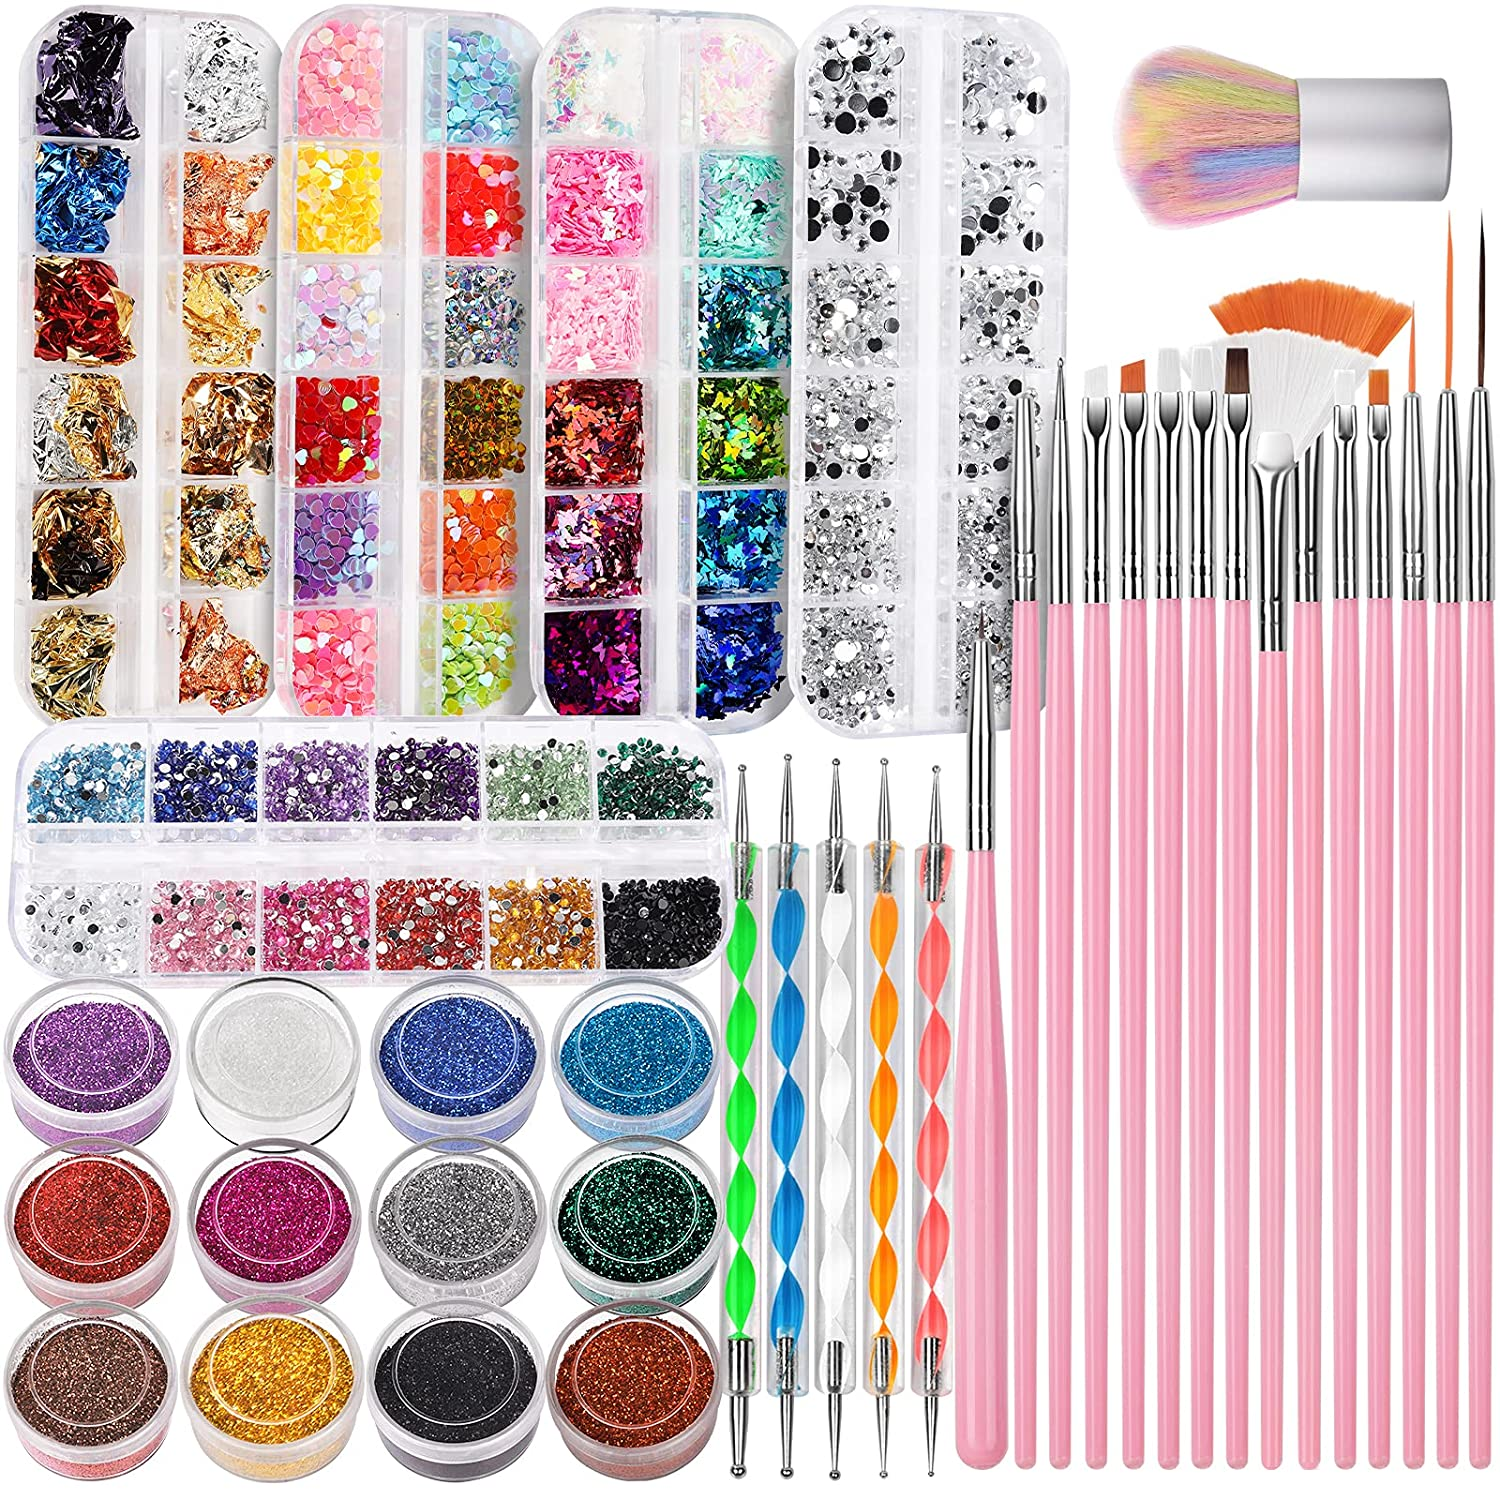 Manufacturer OFFicial shop FANDAMEI Nail Art Kit Design Brush Tools Max 73% OFF with